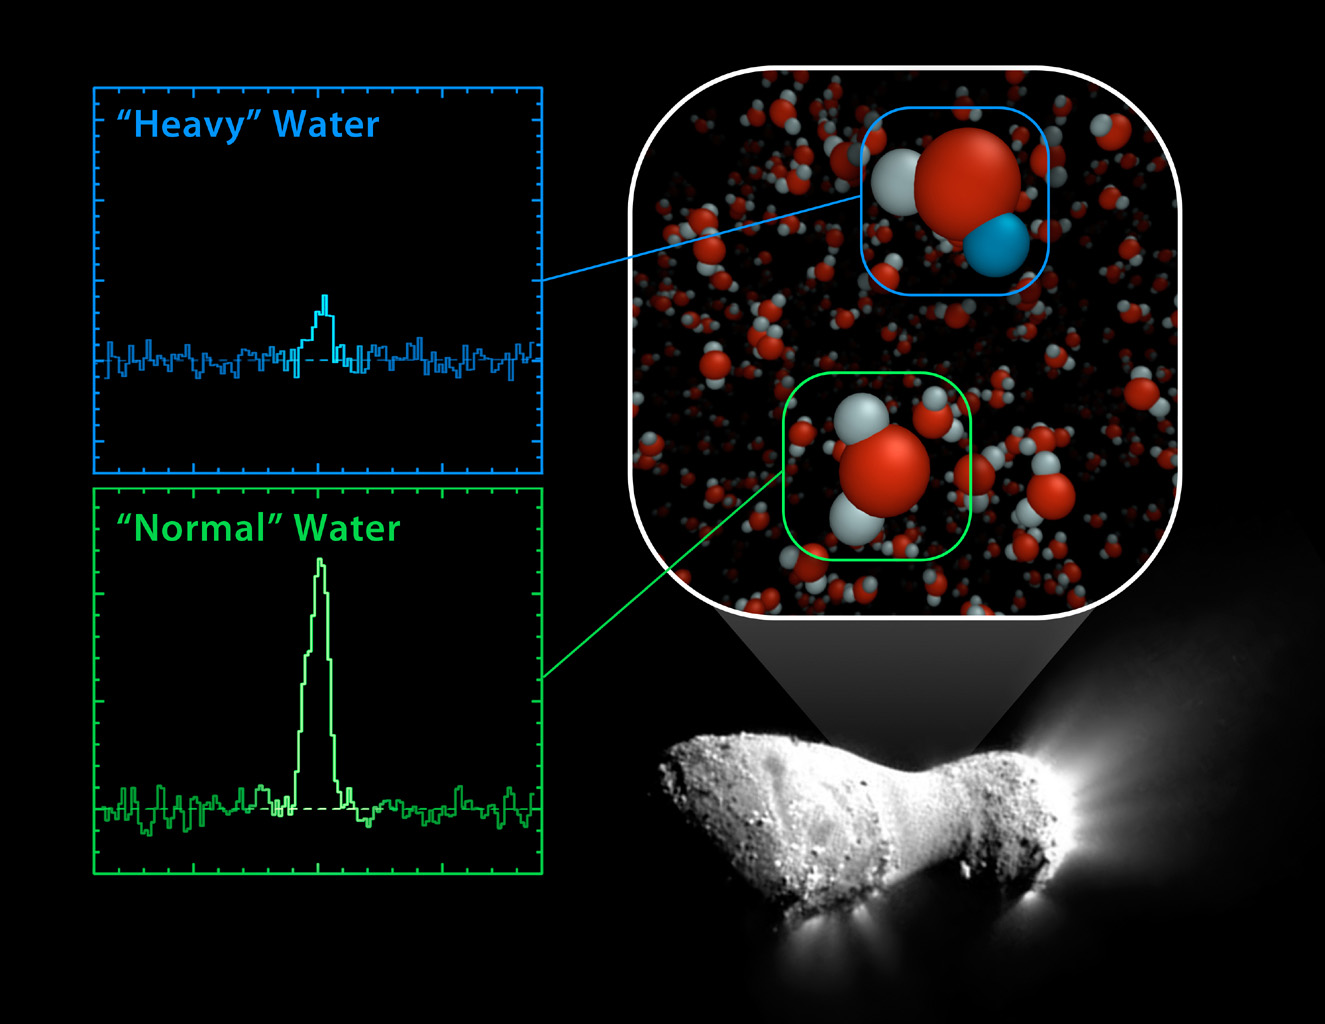 Using NASA's Herschel Space Observatory, astronomers have discovered that comet Hartley 2 possesses a ratio of 'heavy water' to light, or normal, water that matches what's found in Earth's oceans.